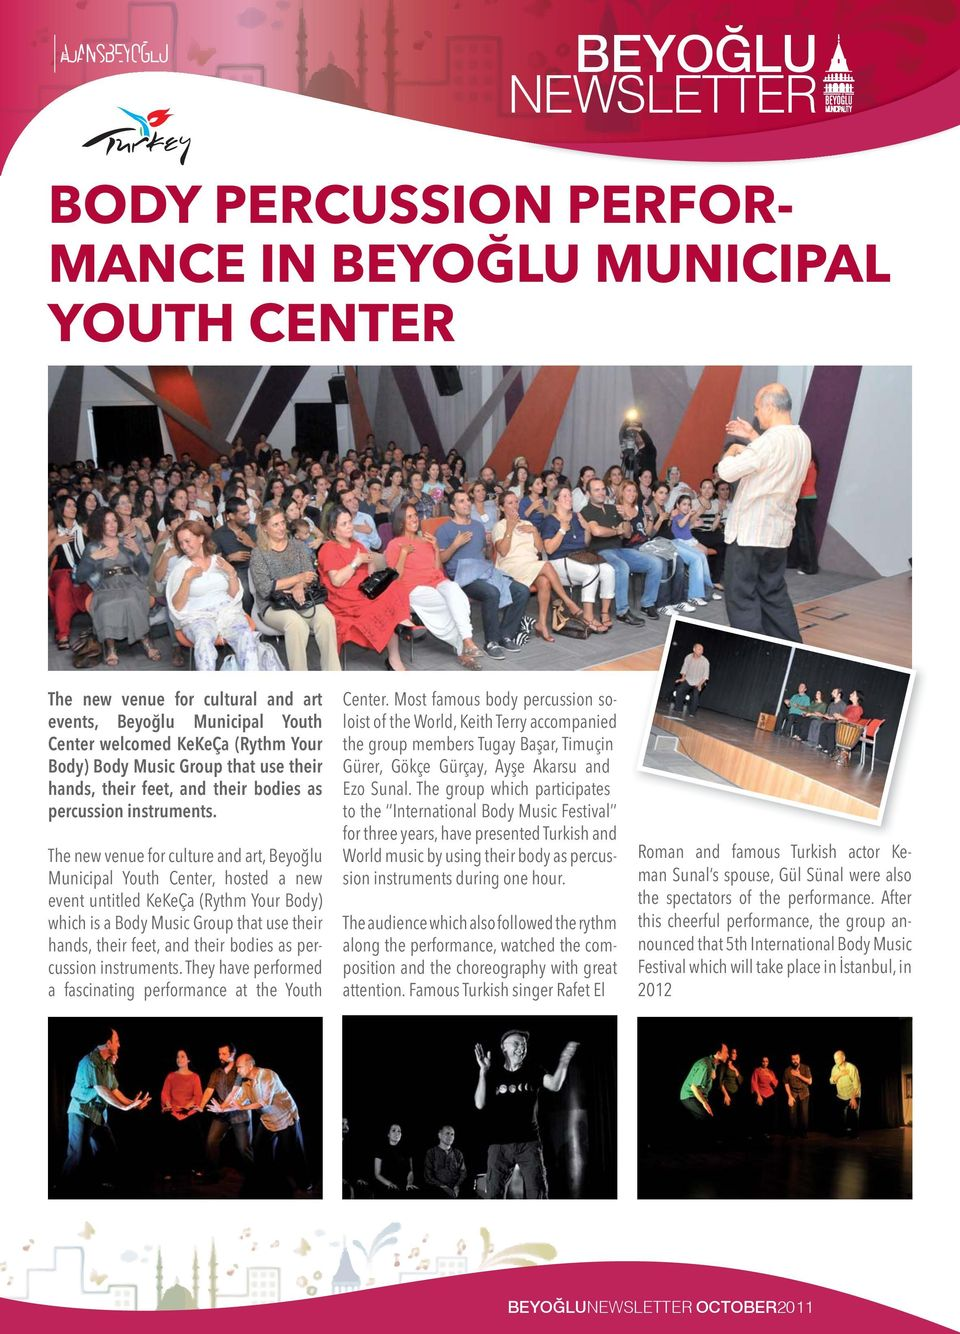 The new venue for culture and art, Beyoğlu Municipal Youth Center, hosted a new event untitled KeKeÇa (Rythm Your Body) which is a Body Music Group that use  They have performed a fascinating